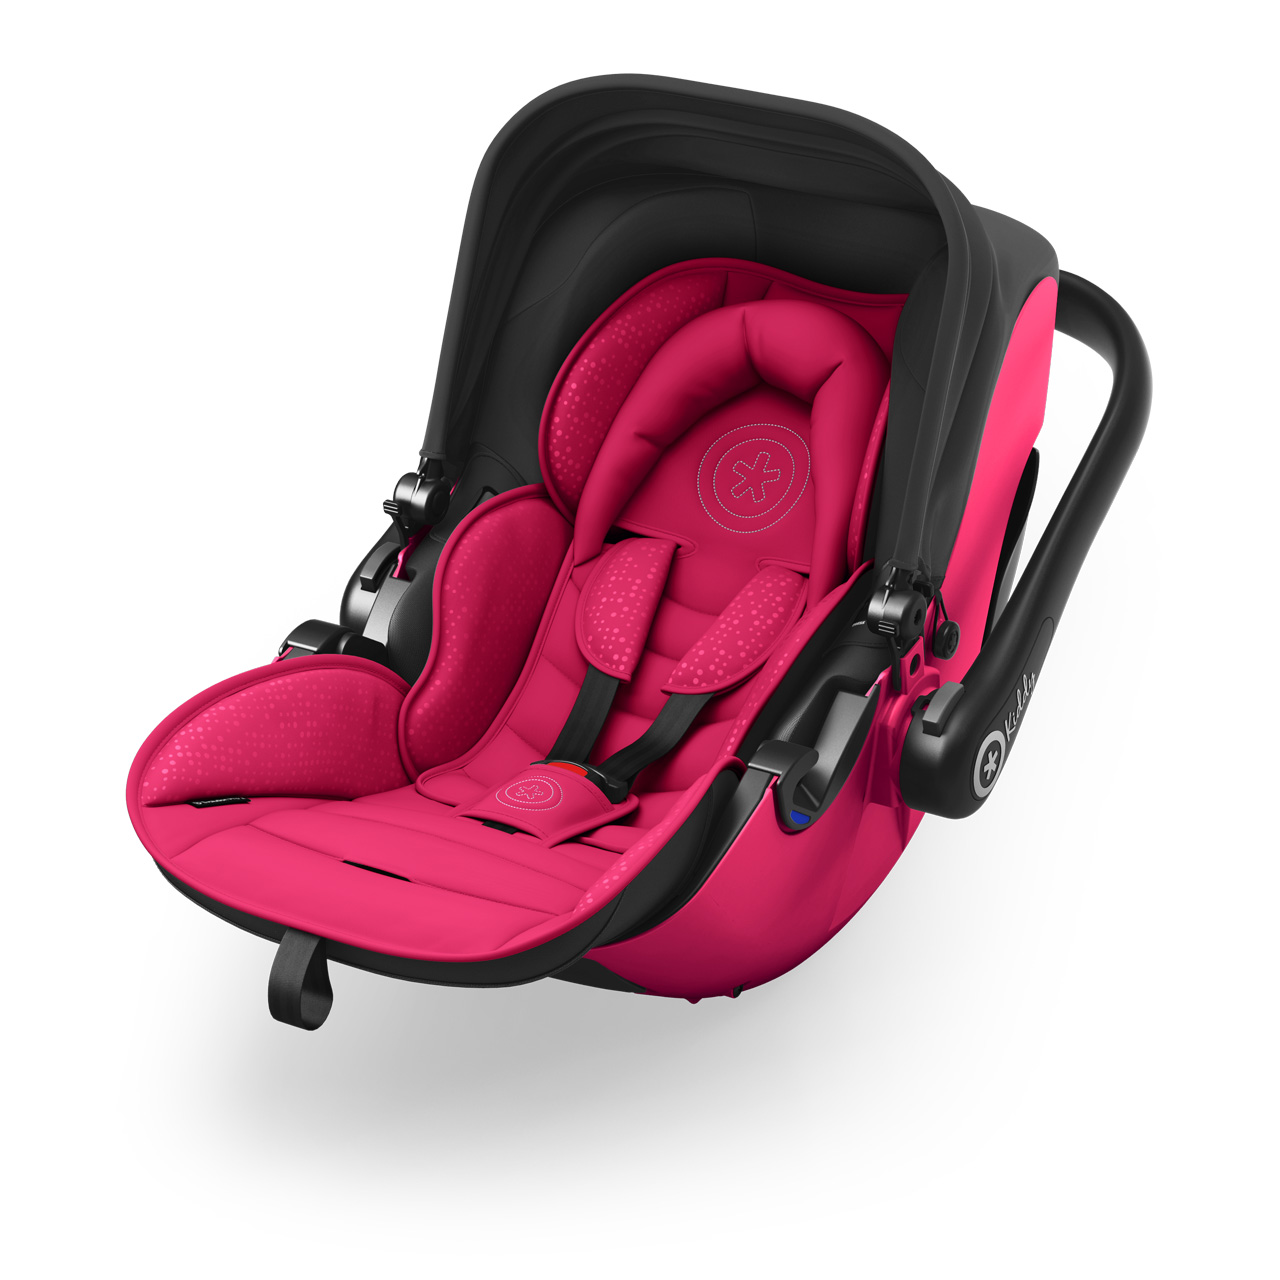 Babyschale Cybex Flugzeug Kiddy Evolution Pro 2